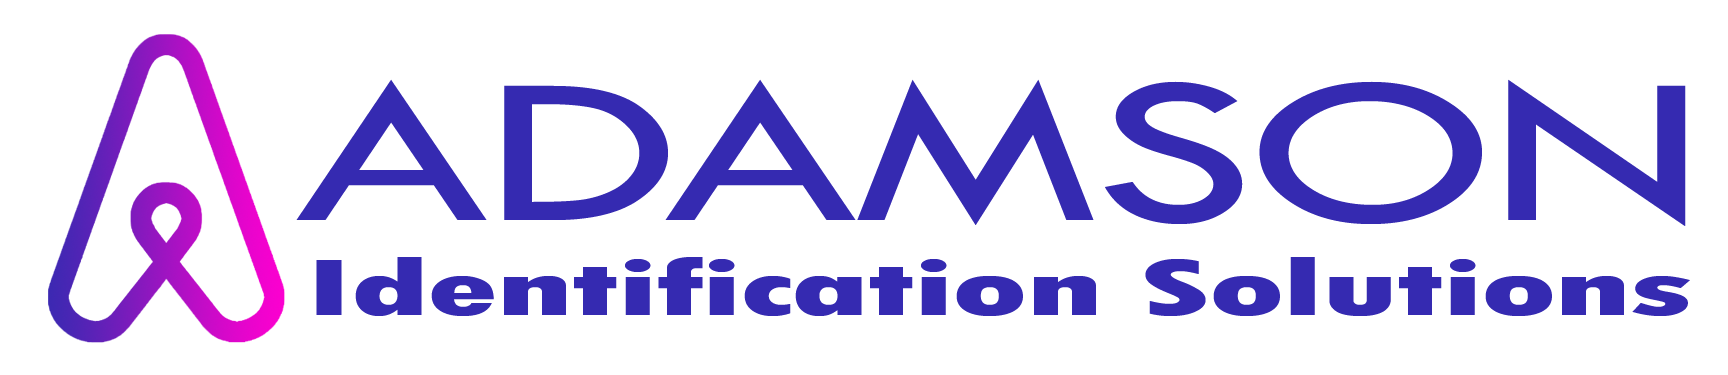 Adamson Identification Solutions